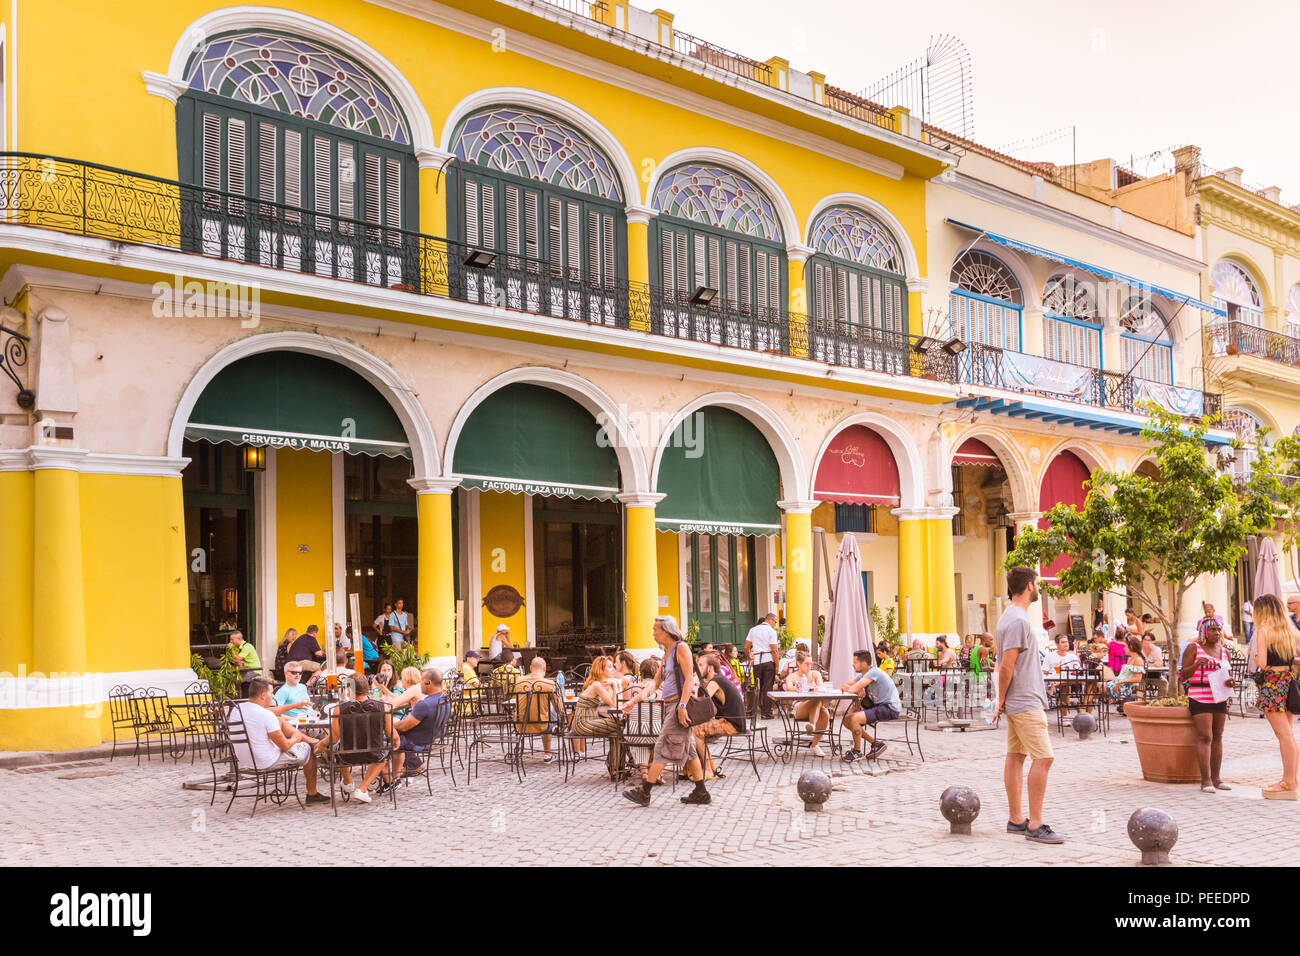 People in cafes and restaurants on Plaza Vieja, Old Havana, Cuba - Stock Image